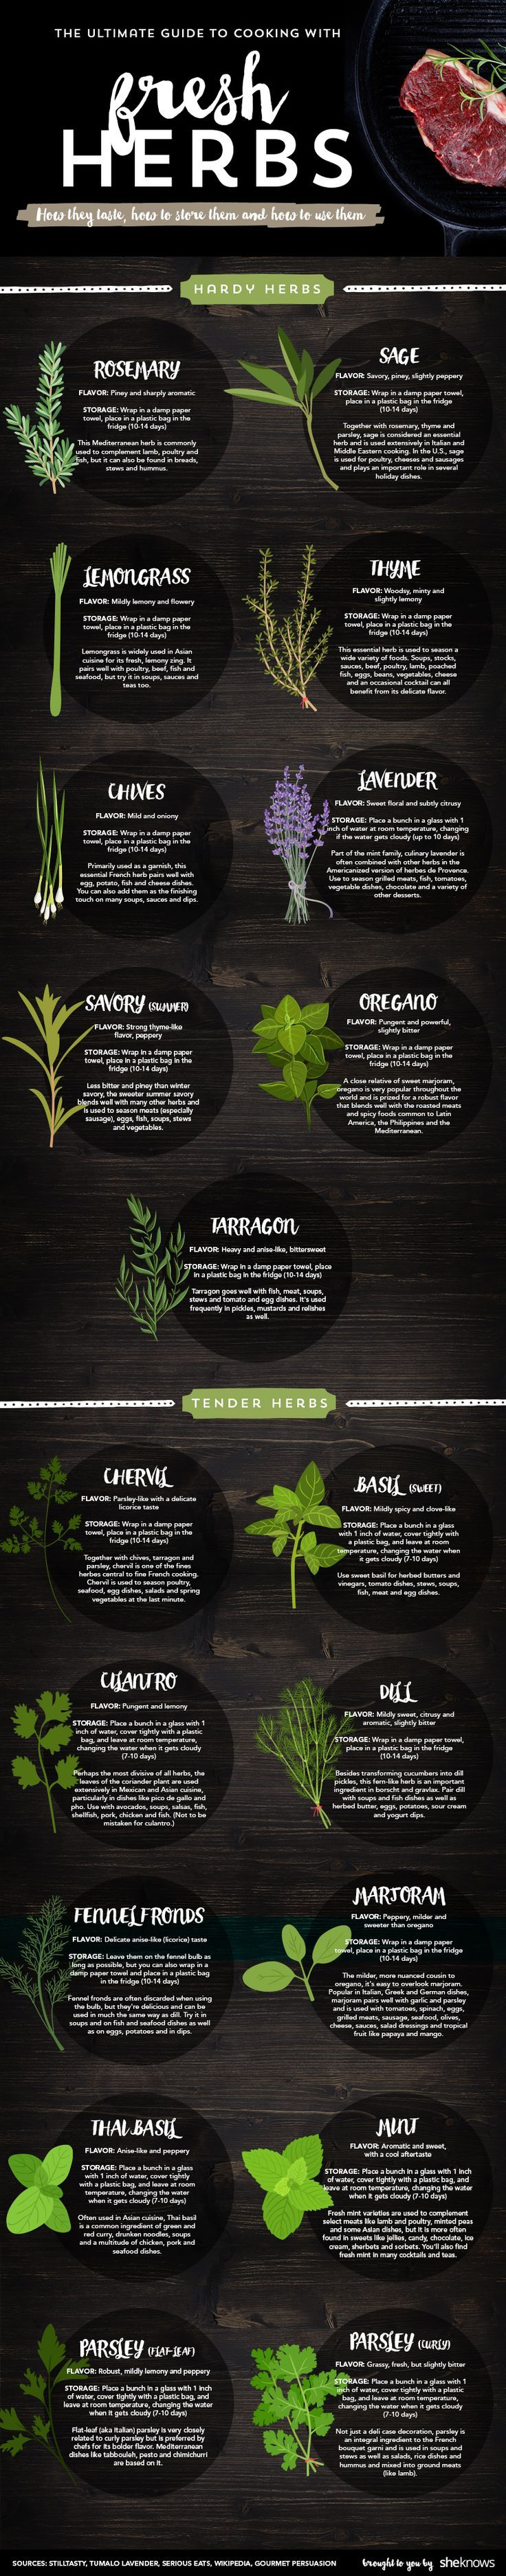 Everything you need to know about cooking with fresh herbs, all in 1 handy chart